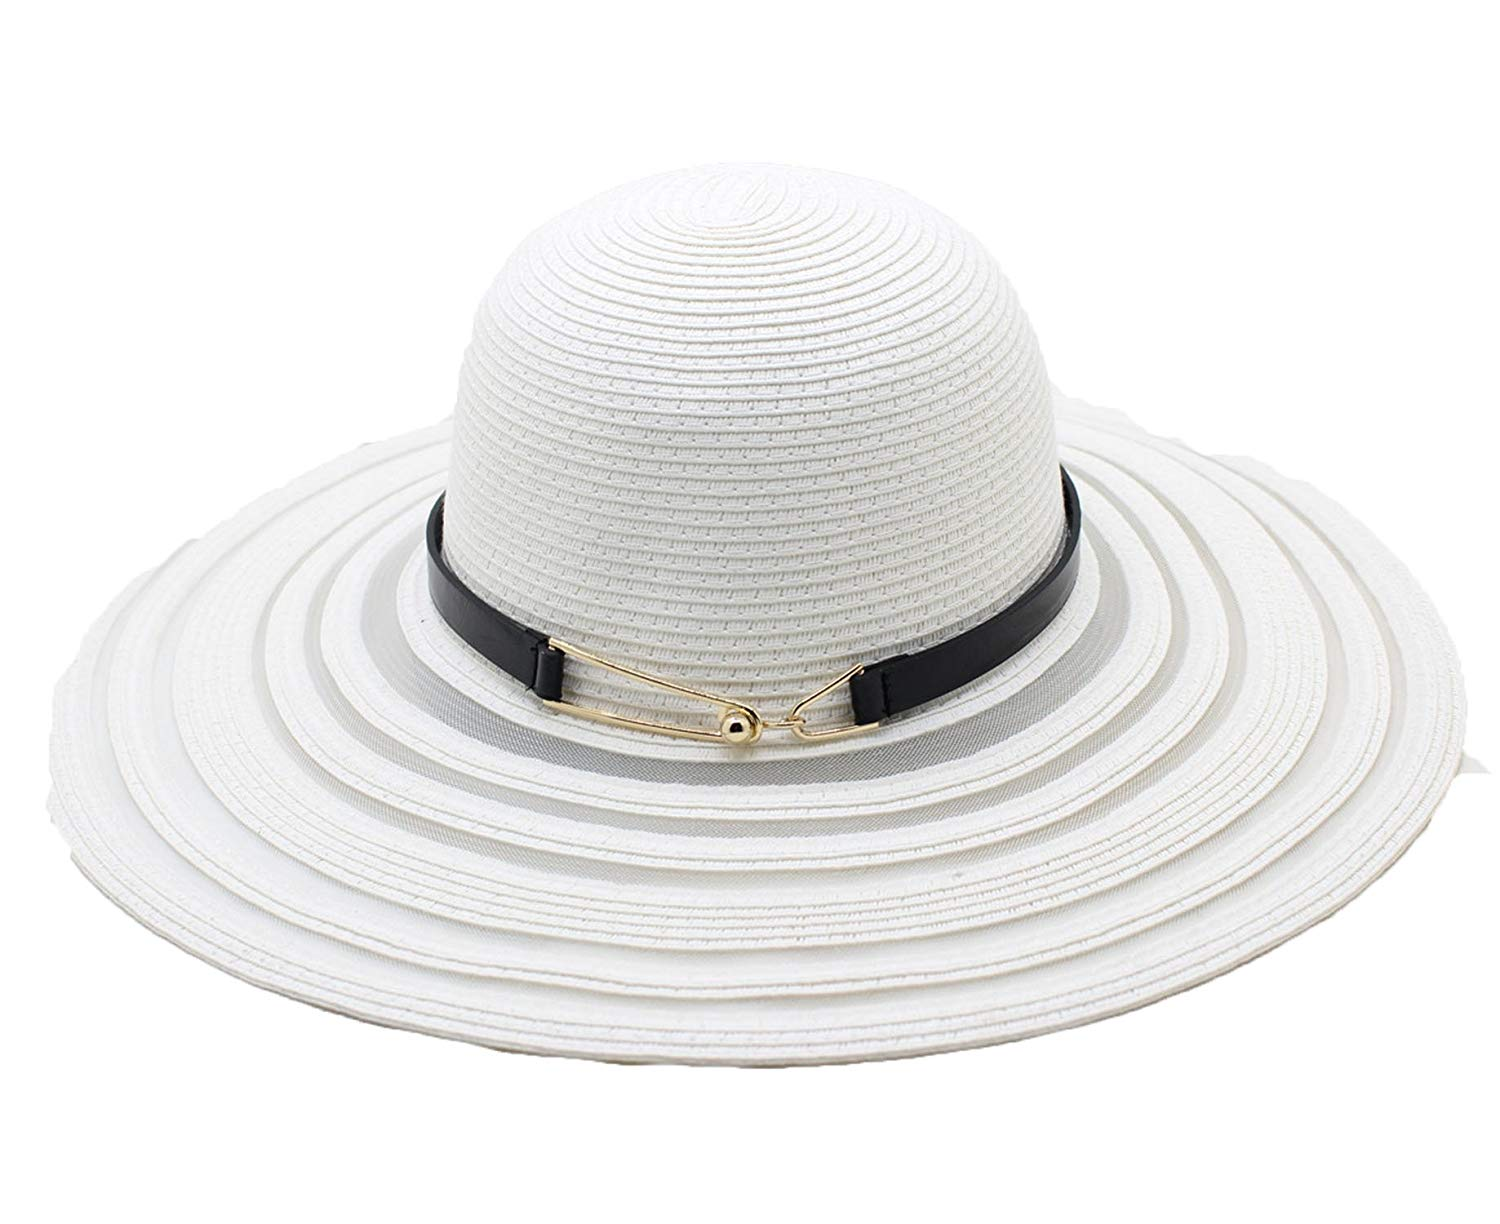 Get Quotations · Summer Mesh Sun Hat Big Straw Hat New Sun Hat Beach Hat  Sun Hat Outdoor Hat 3f551bb38a19